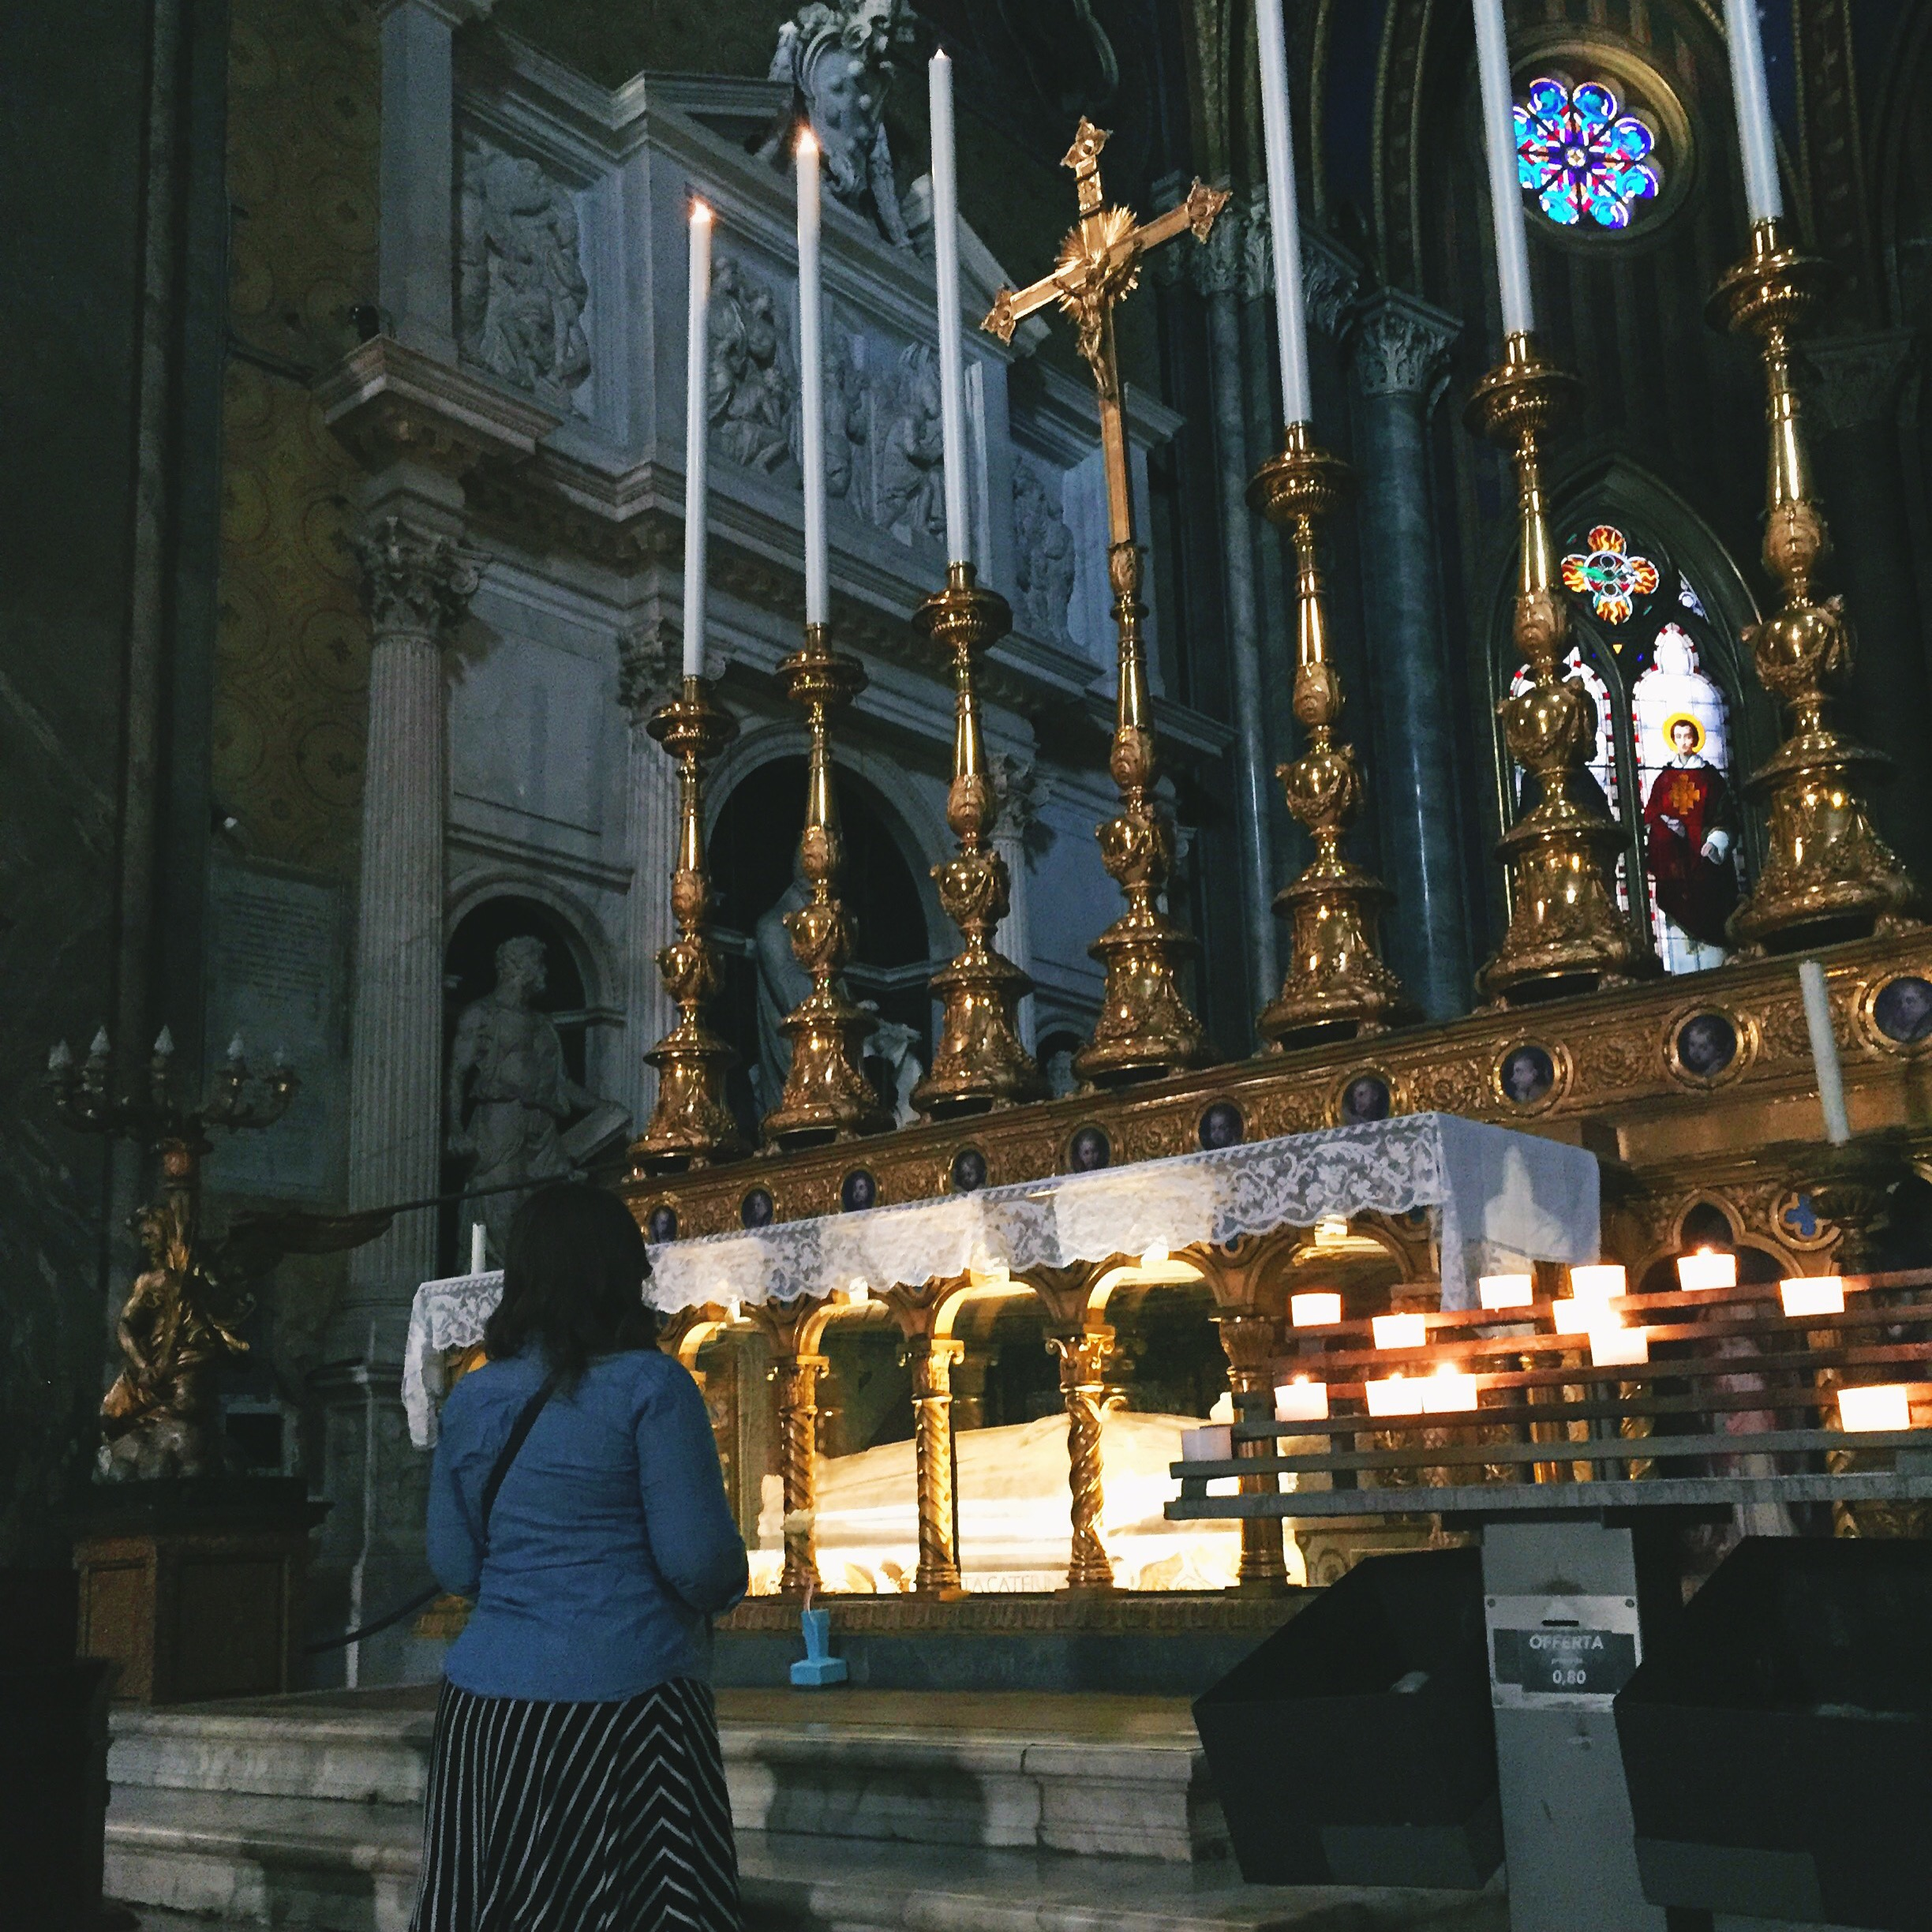 While Lindsay and Bekah were in Rome for St. Teresa of Calcutta's canonization, they were able to visit different churches.  Here is Bekah (from the snapchat) in Santa Maria sopra Minerva at St. Catherine's Tomb.